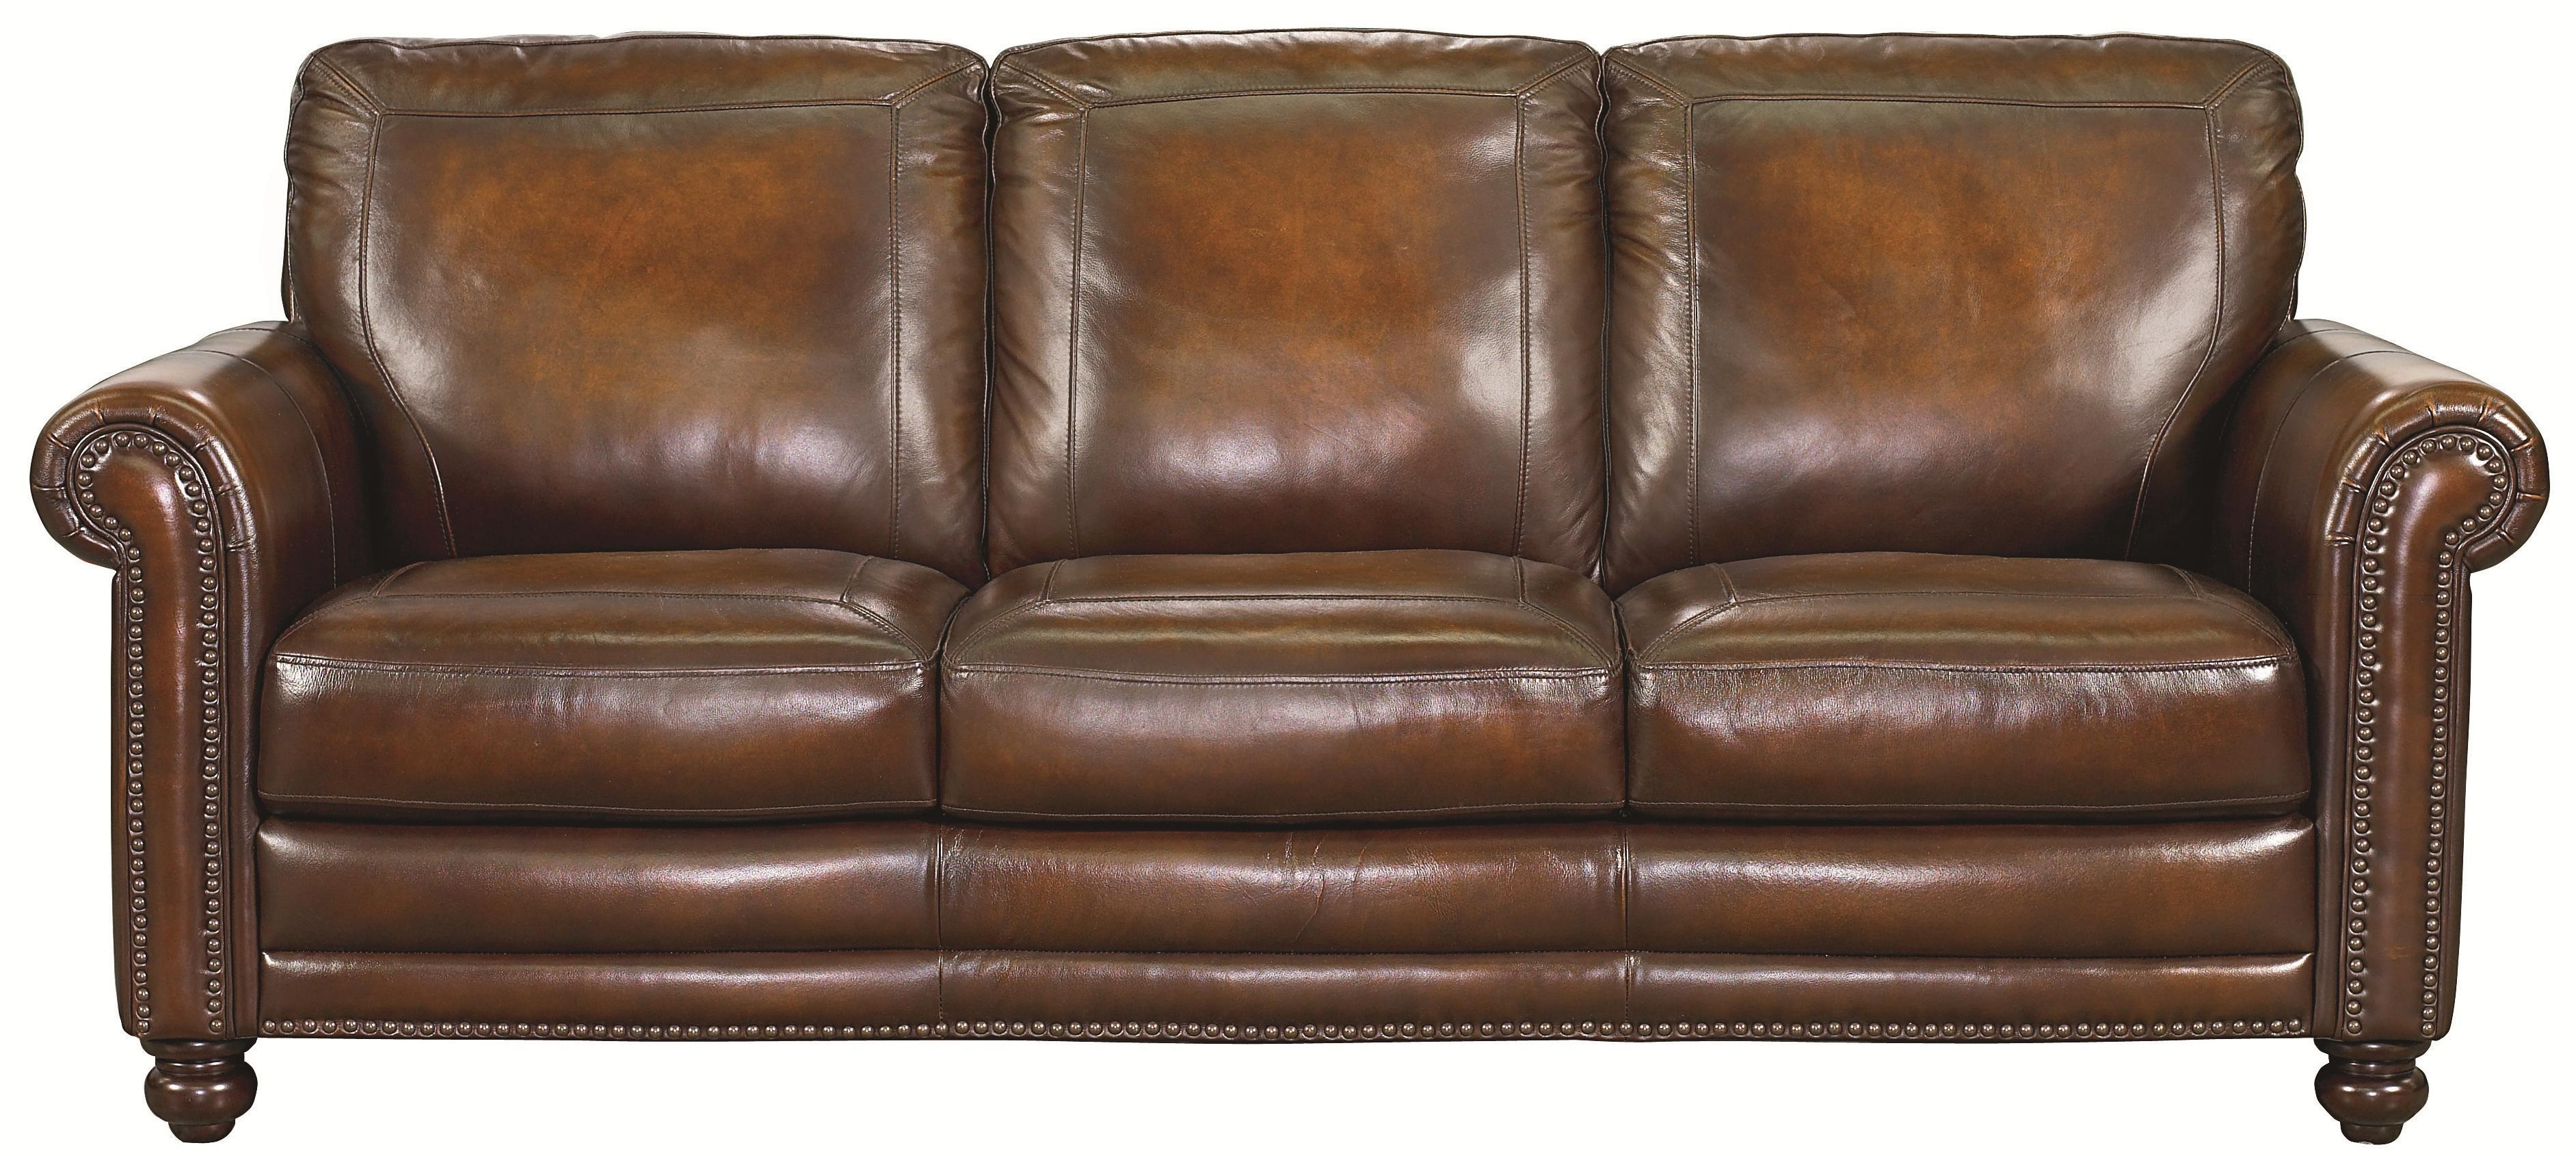 Bassett Hamilton Traditional Sofa With Nail Head Trim – Great Regarding Brown Leather Sofas With Nailhead Trim (Image 2 of 20)